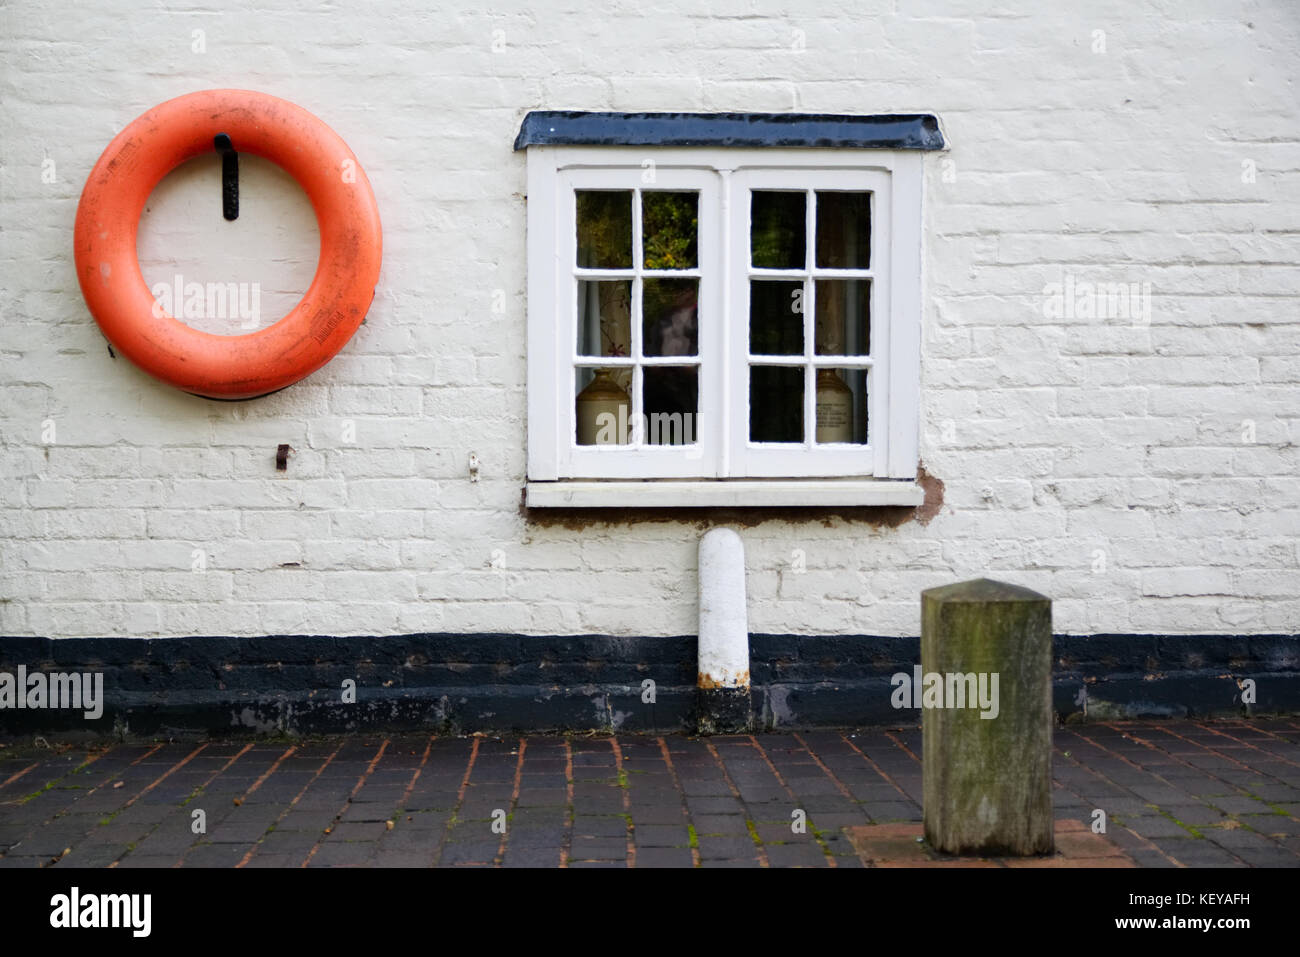 Canal side cottage with window and life saving ring on the white wall - Stock Image